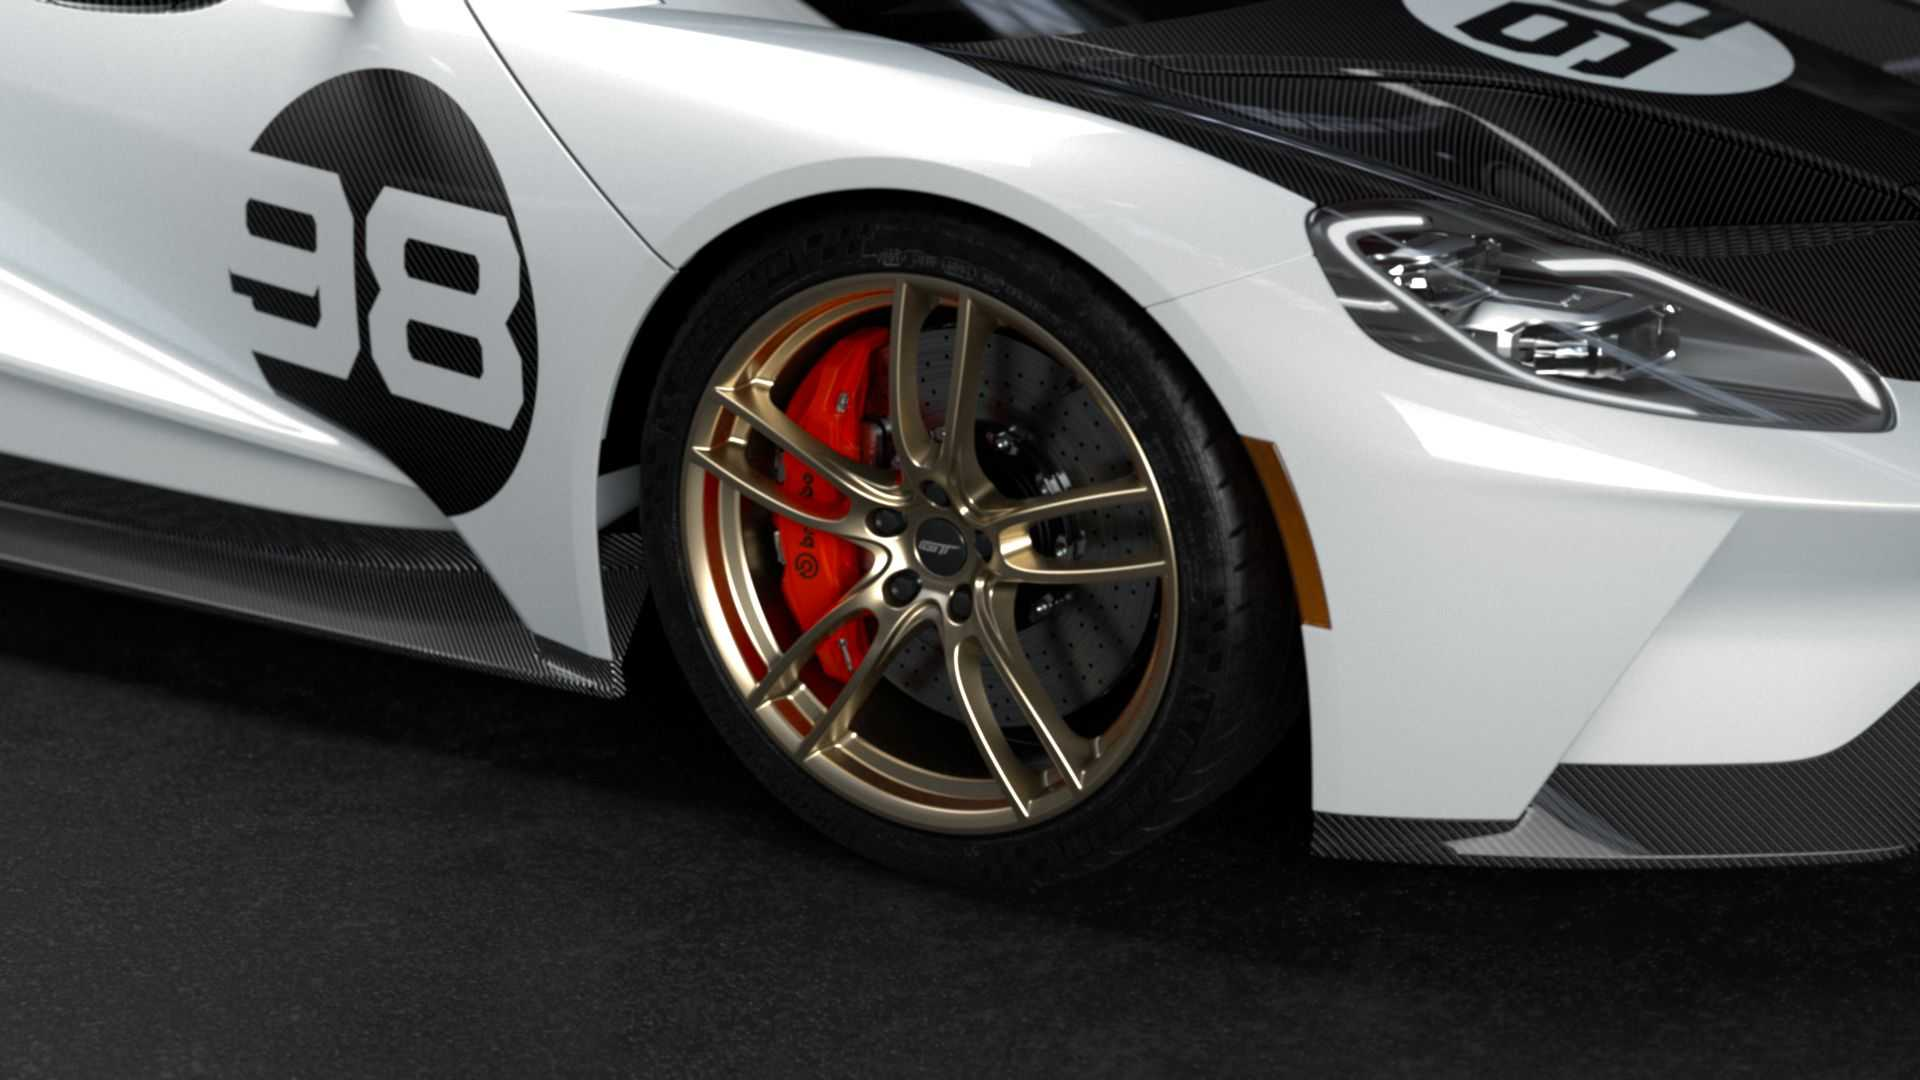 2021-ford-gt-heritage-edition-gold-wheels.jpg